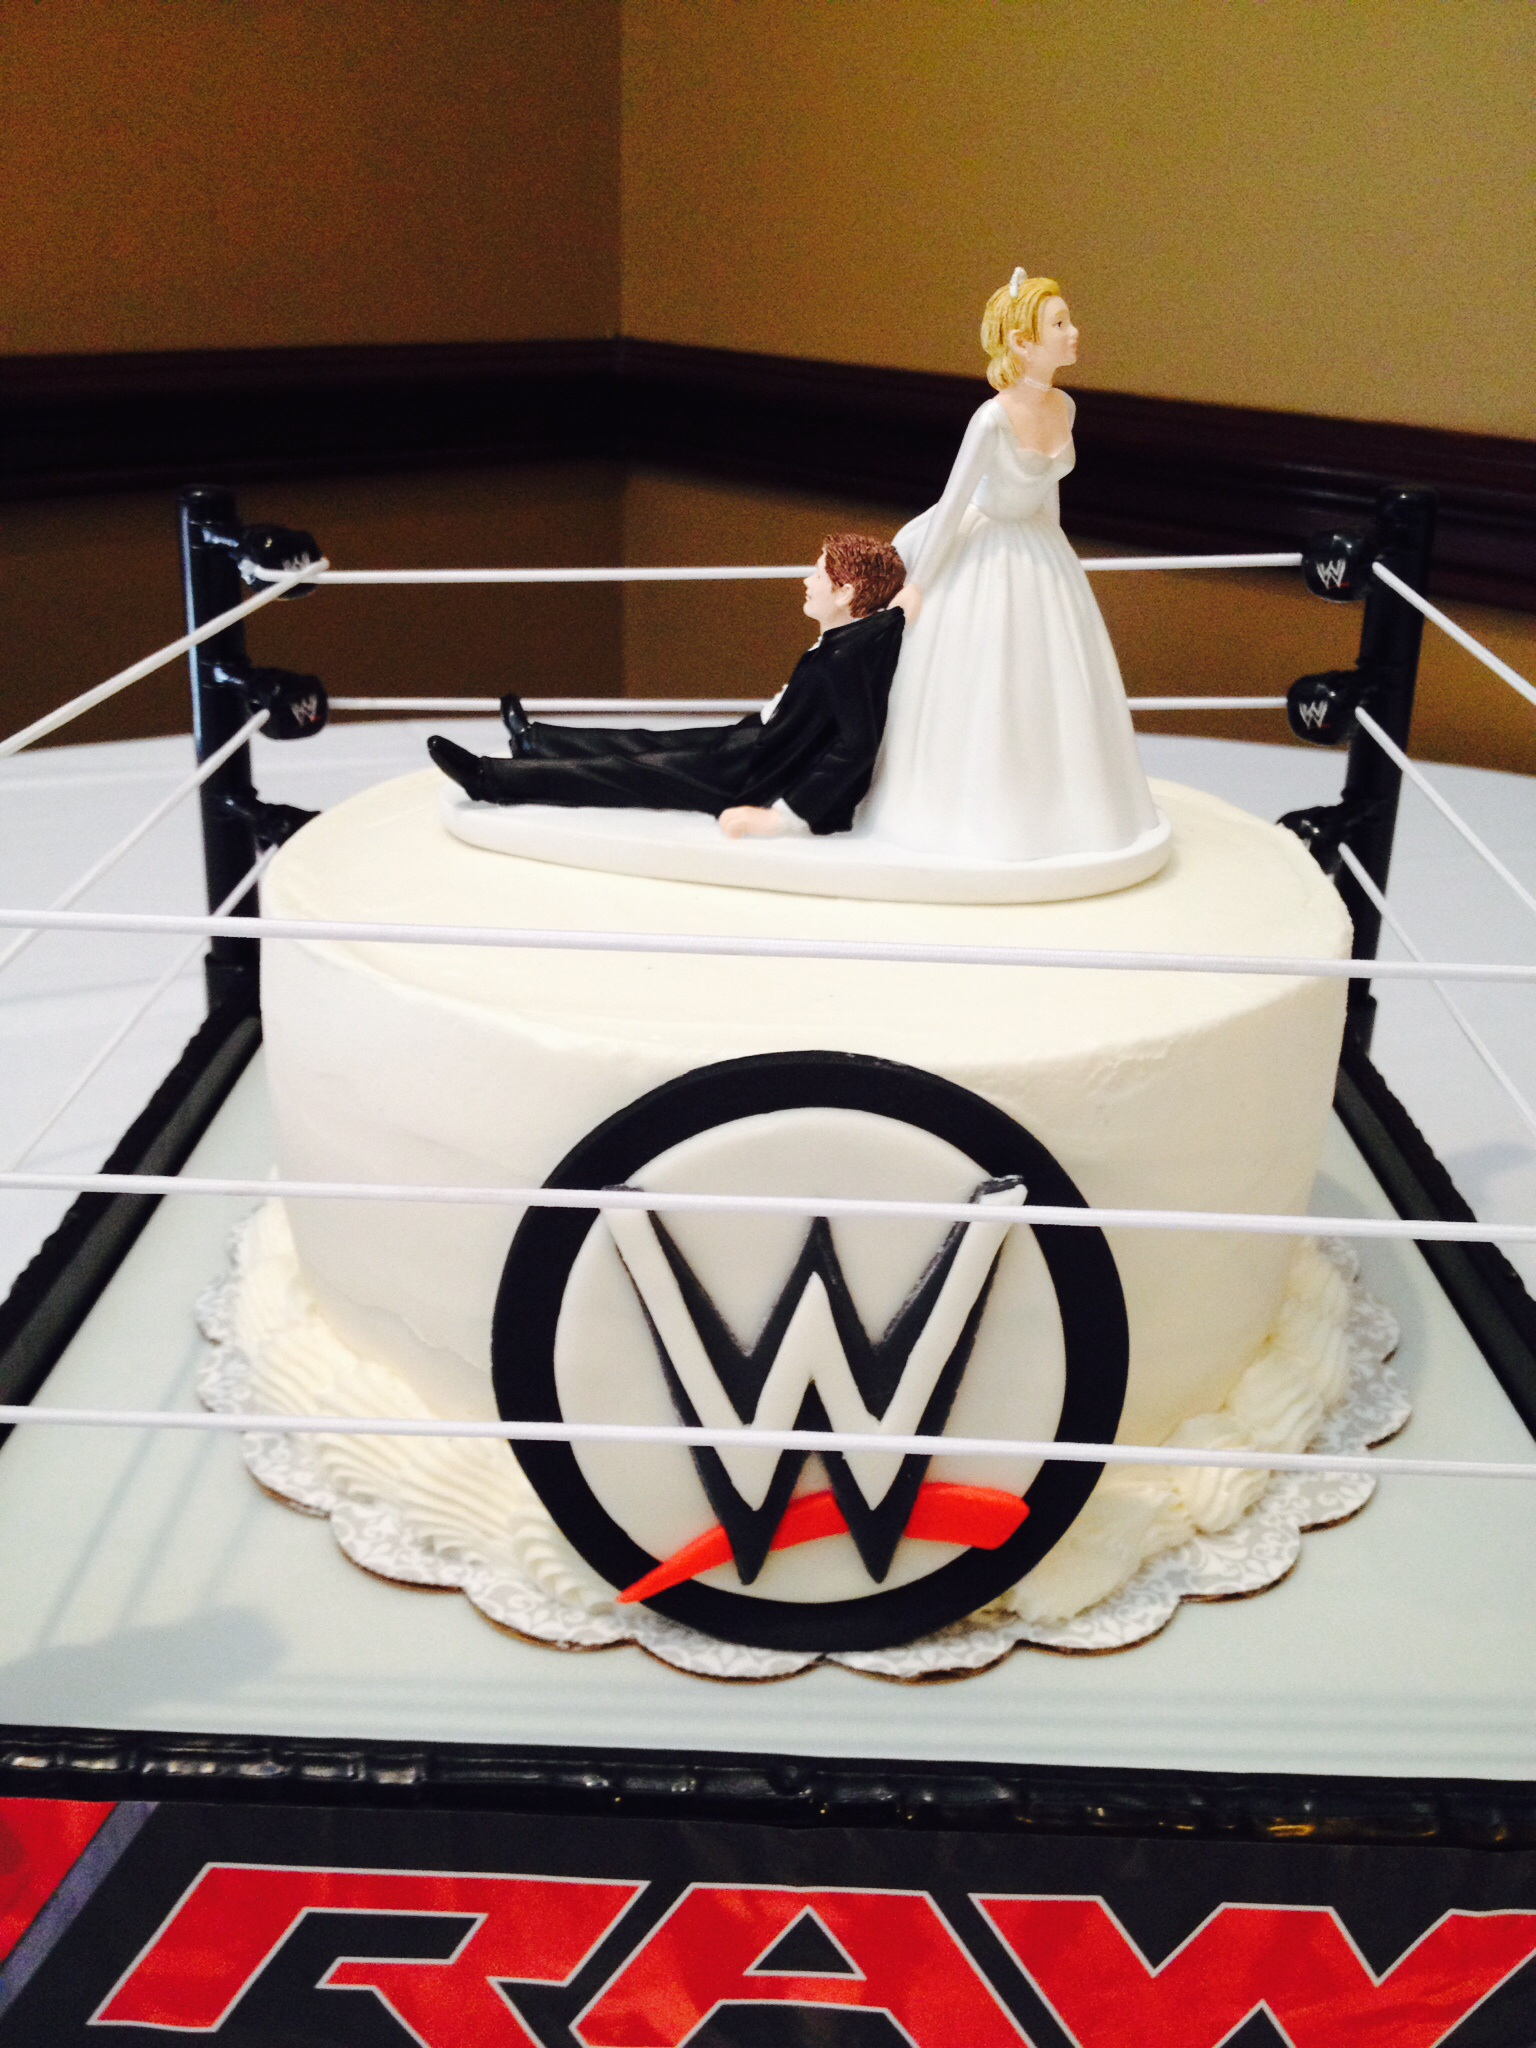 Wwe Wedding Cake